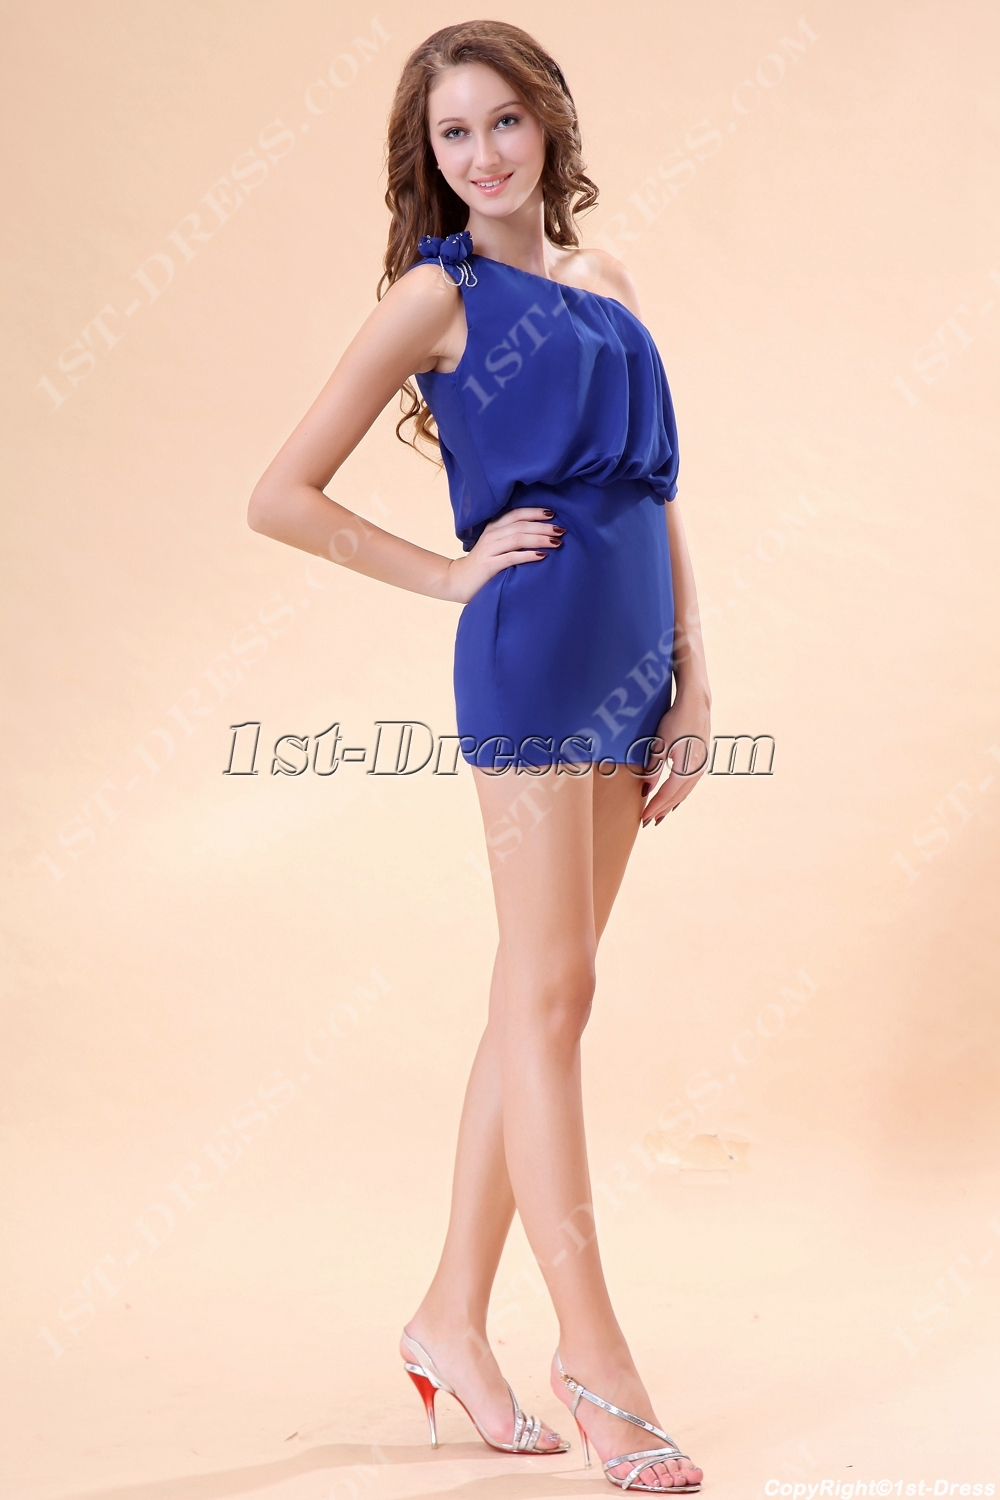 e500d5ef539 One Shoulder Royal Blue Homecoming Dresses under 100 1st-dress.com